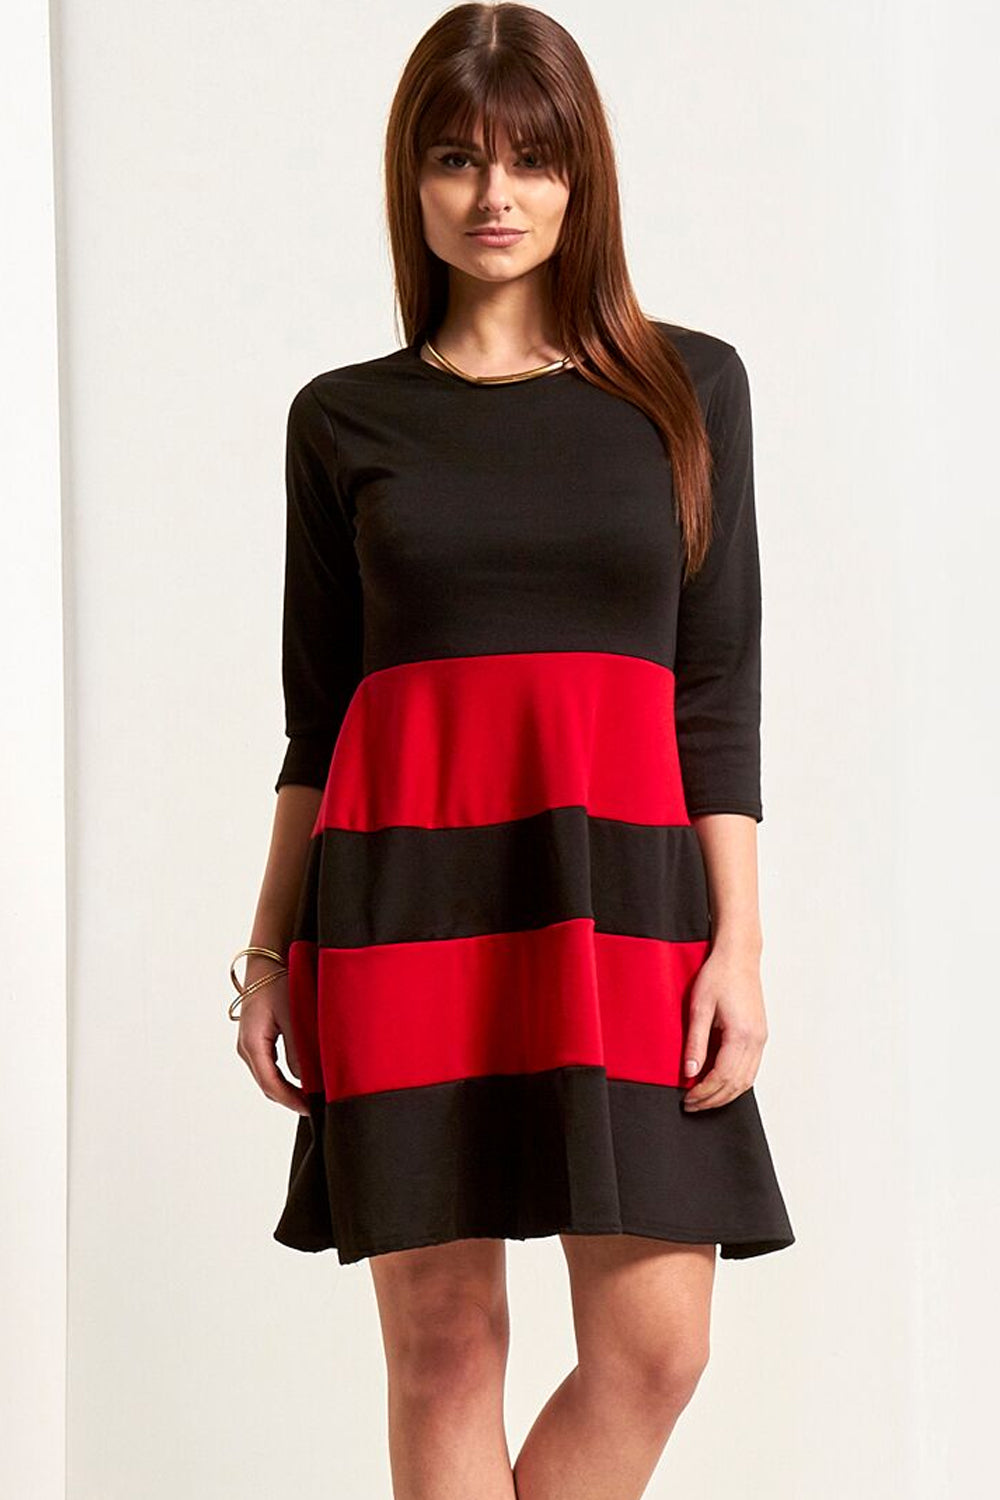 Cropped Sleeve Colour Block Mini Skater Dress - bejealous-com